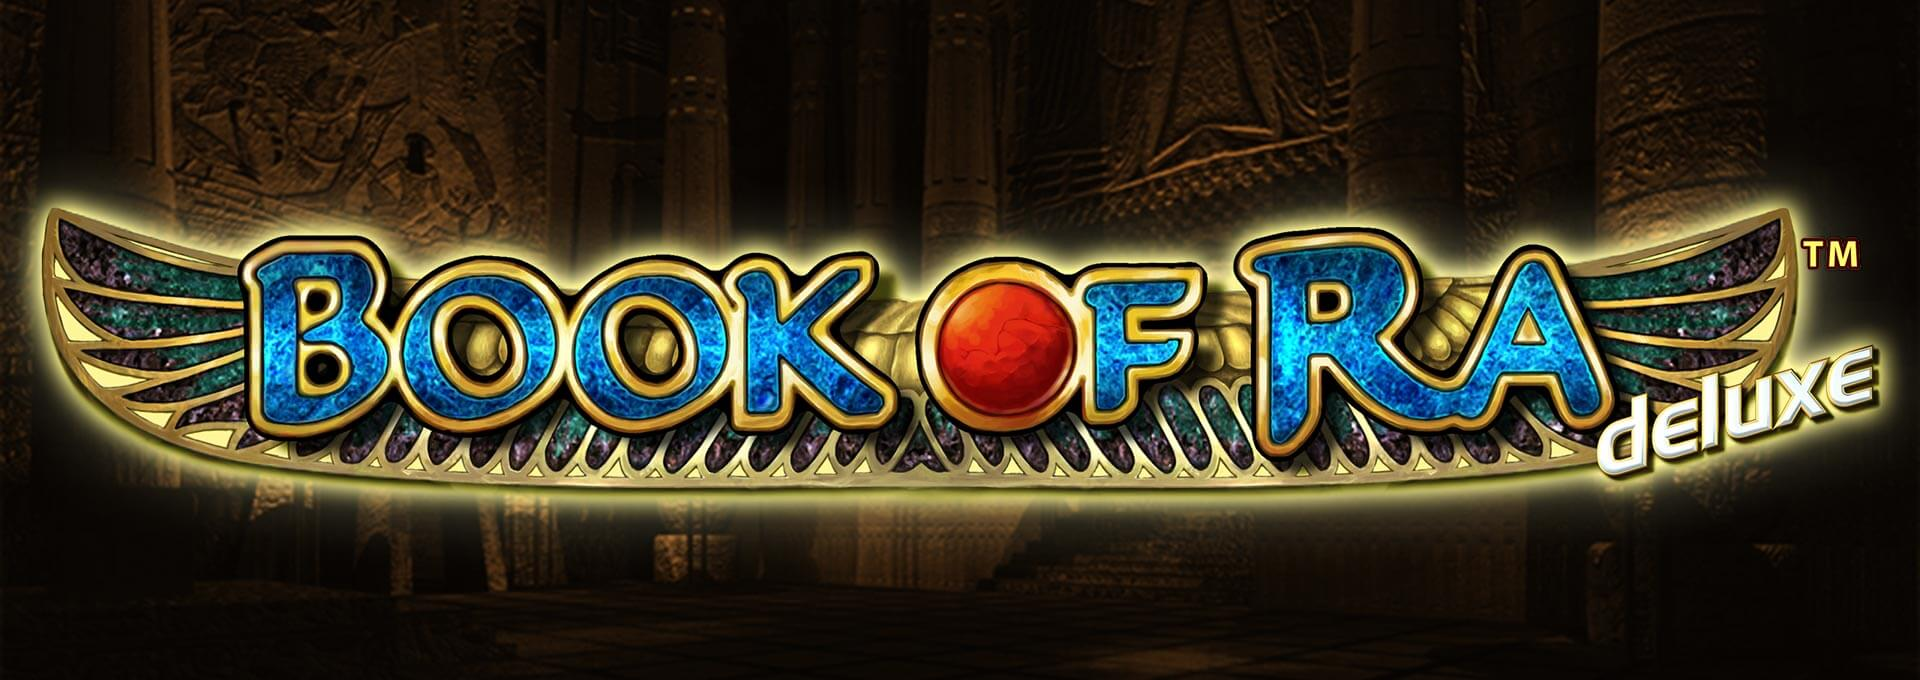 book of ra online casino book of ra download free